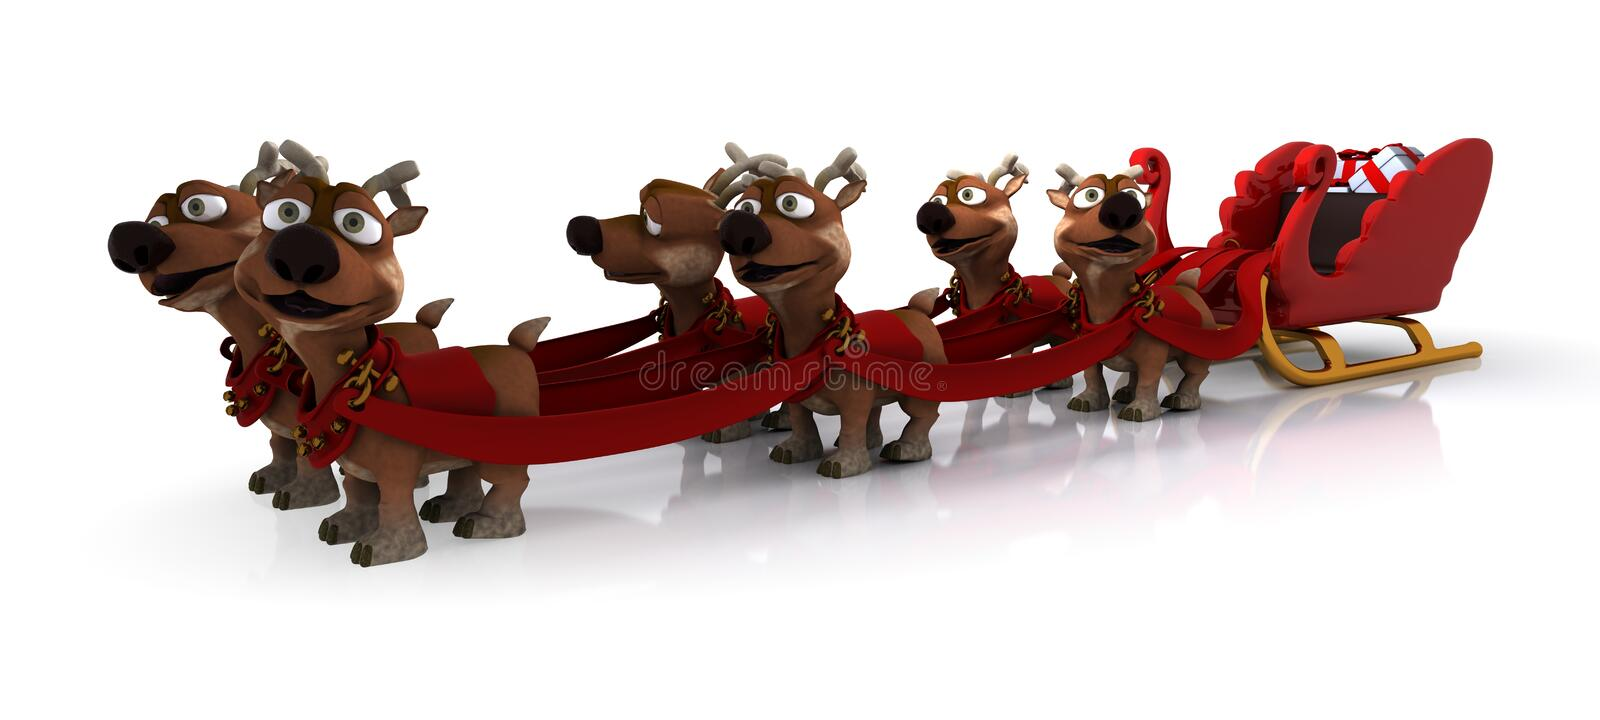 rensantas sleigh vektor illustrationer